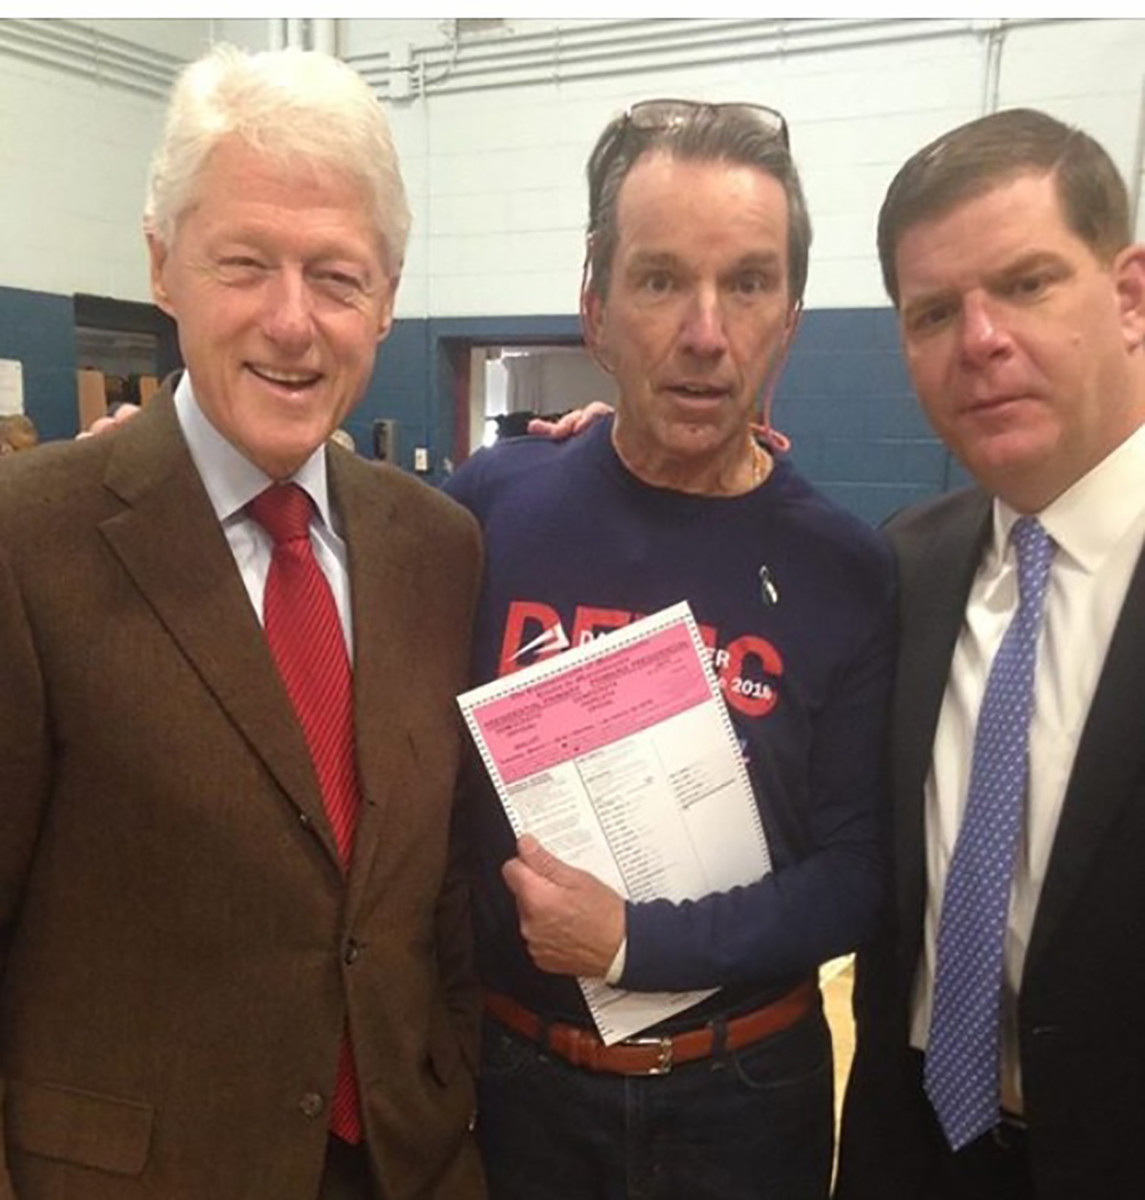 Bill Clinton inside of polling station in Boston, with Boston Mayor Marty Walsh and a voter.